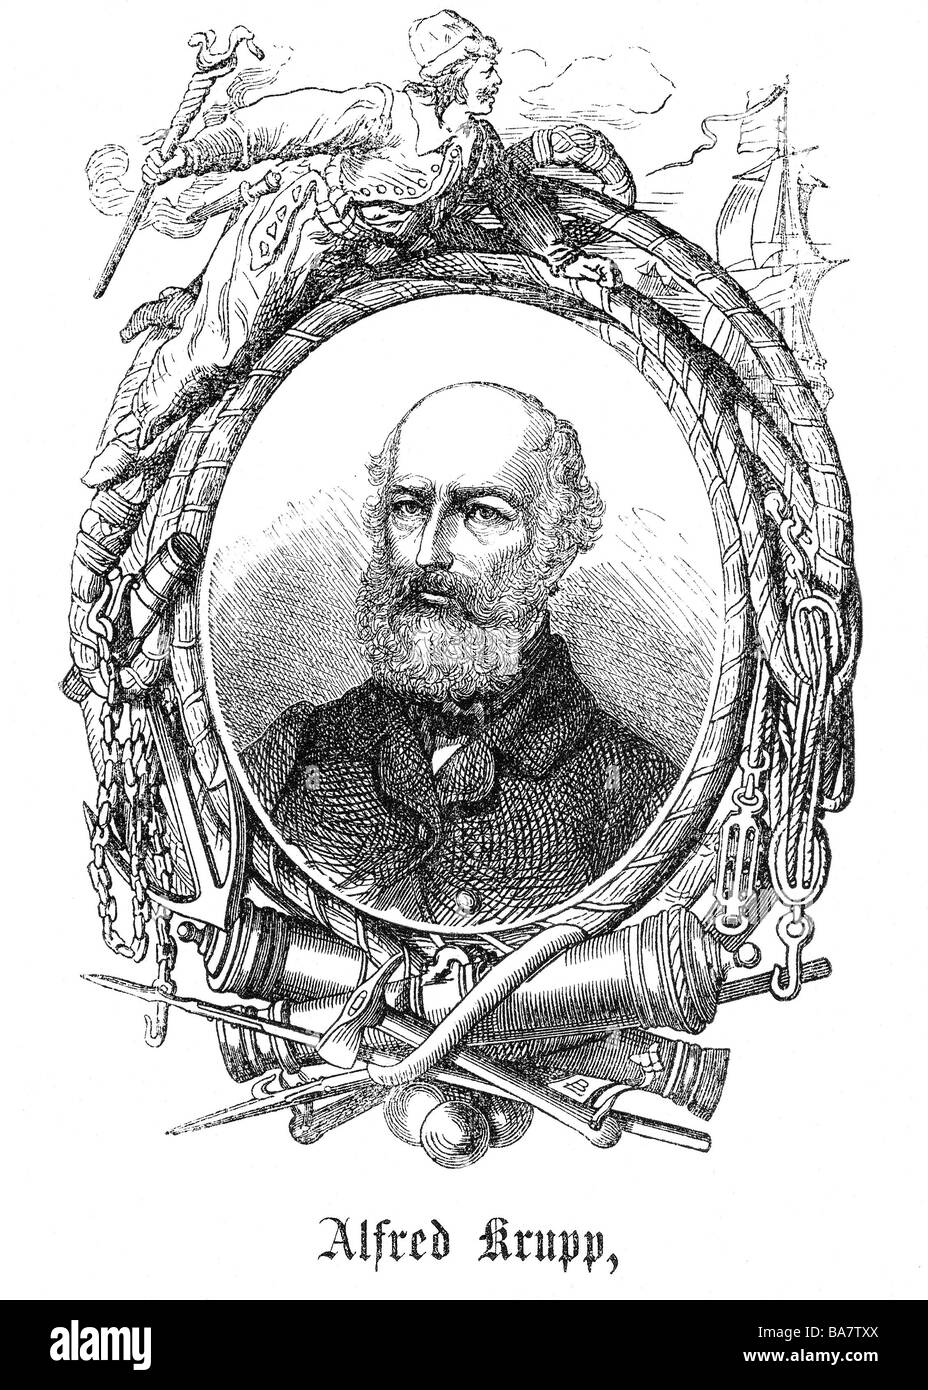 Krupp, Alfred, 11.4.1812 - 14 7.1887, German industrialist, portrait with allegorical border, wood engraving, circa - Stock Image